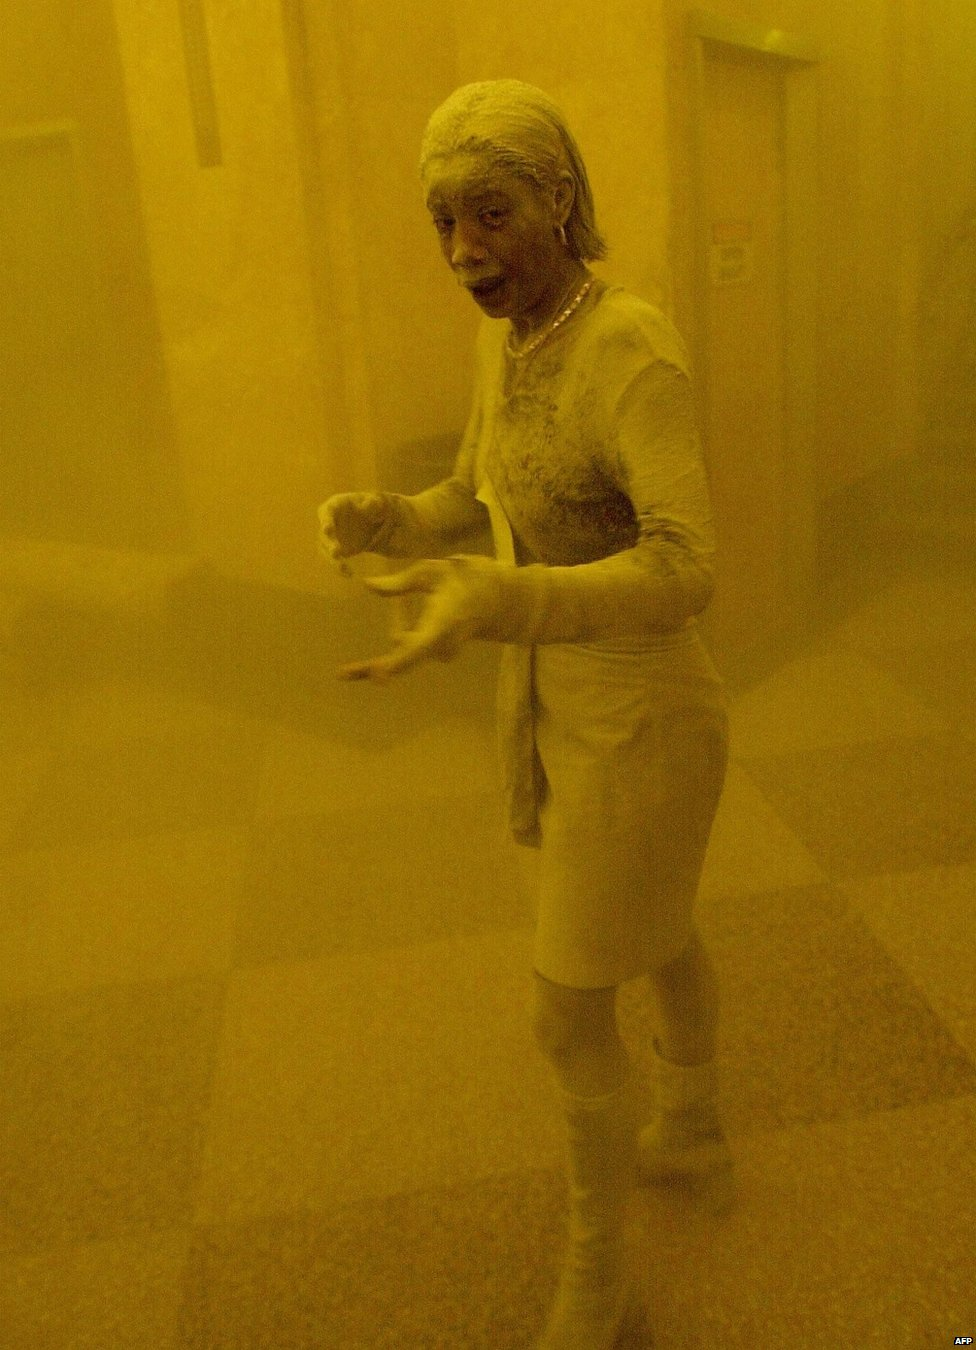 Marcy Borders covered in dust as she takes refuge in an office building after one of the World Trade Center towers collapsed in New York, September 11th 2001.